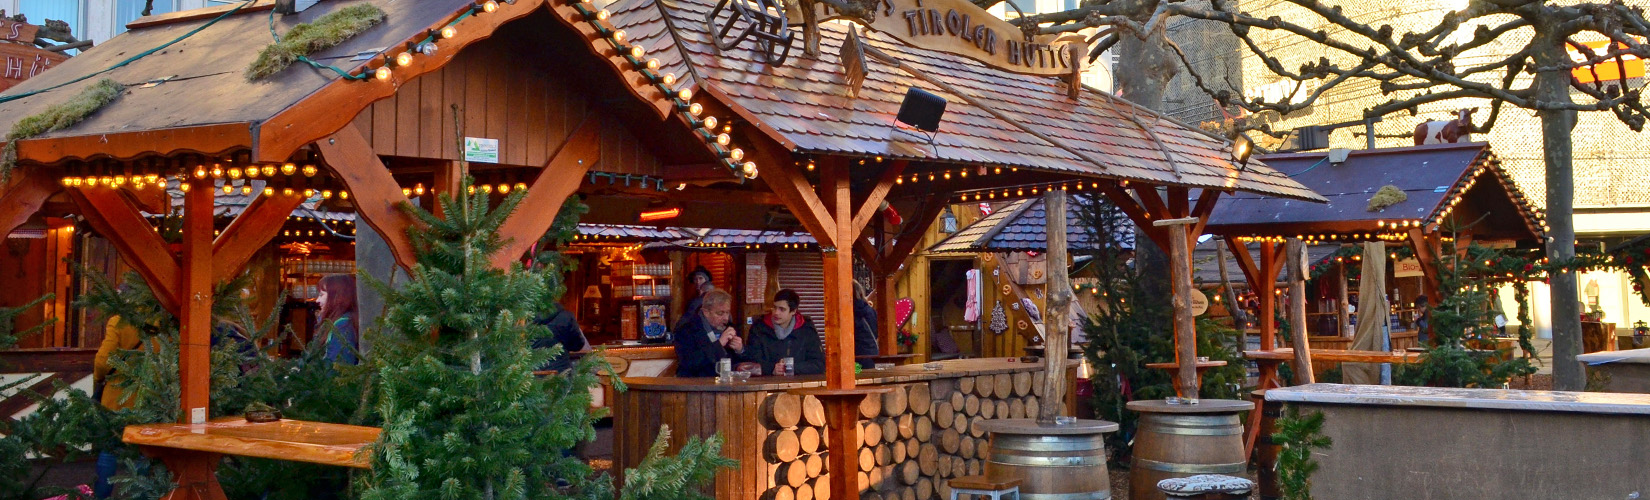 at at Kassel Weihnachtsmarkt - A Fairy Tale German Christmas Market :: I've Been Bit! A Travel Blog